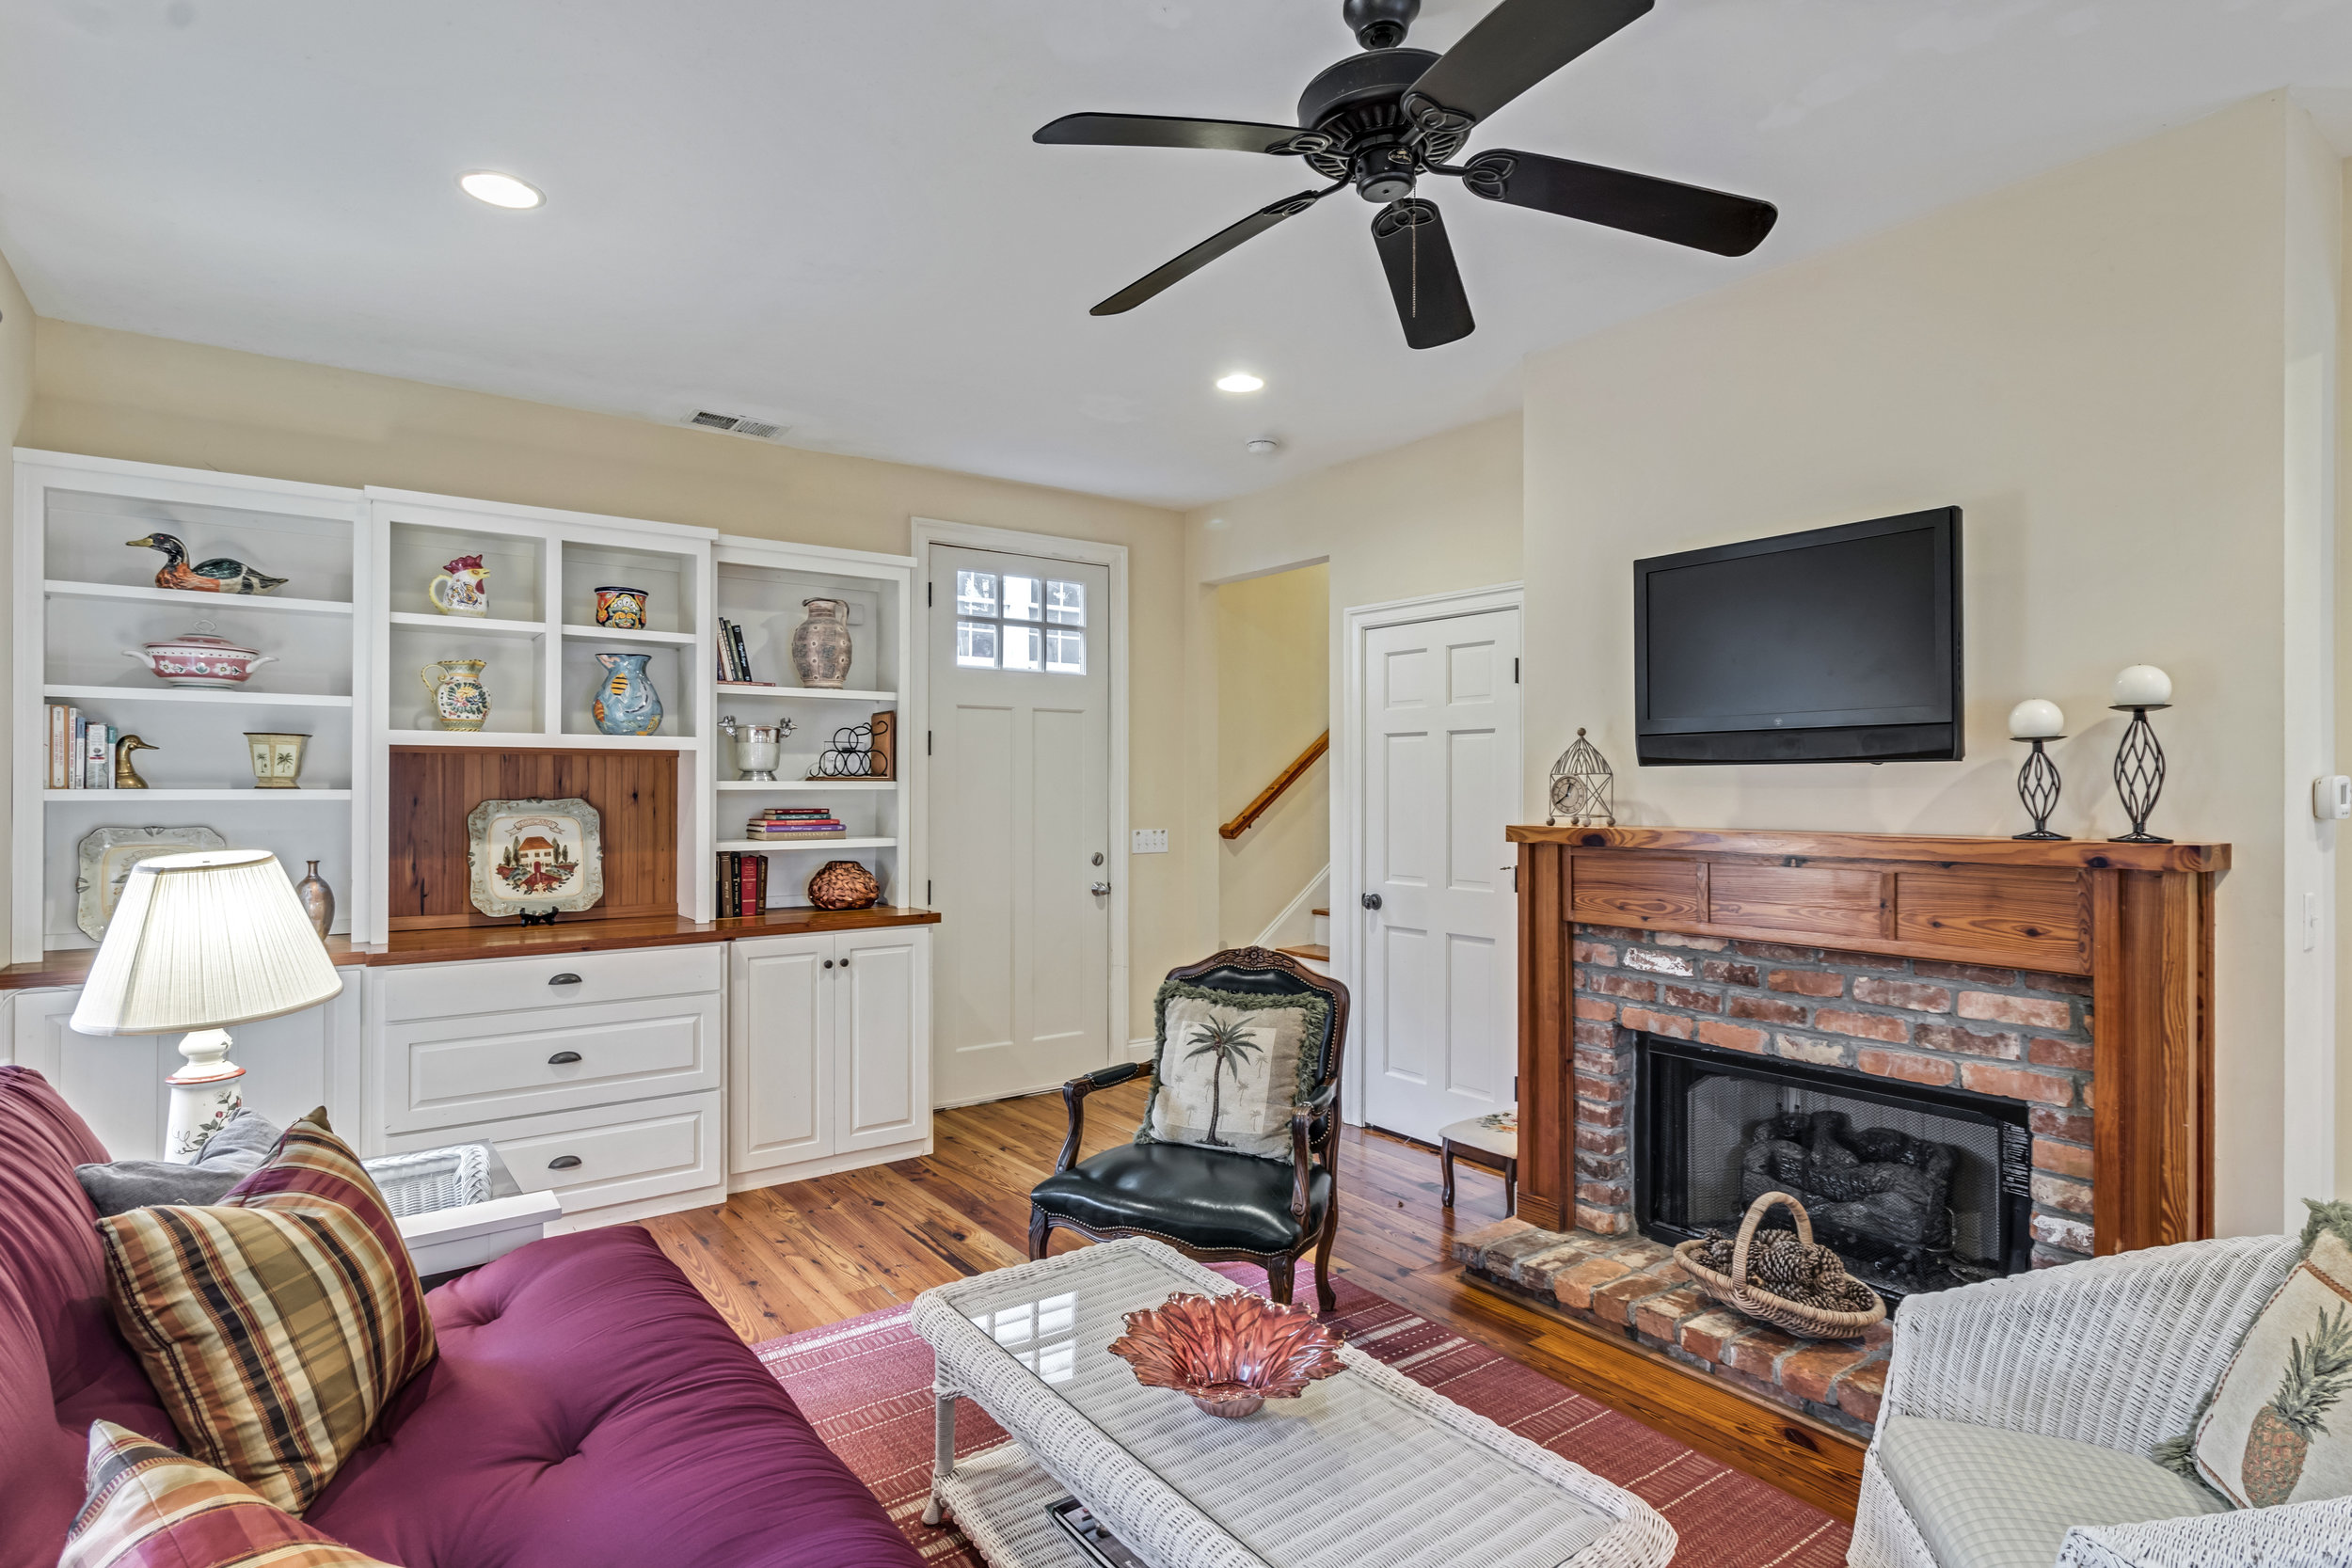 9B - 3 bedrooms - sleeps 6available on a monthly basis: 11/6